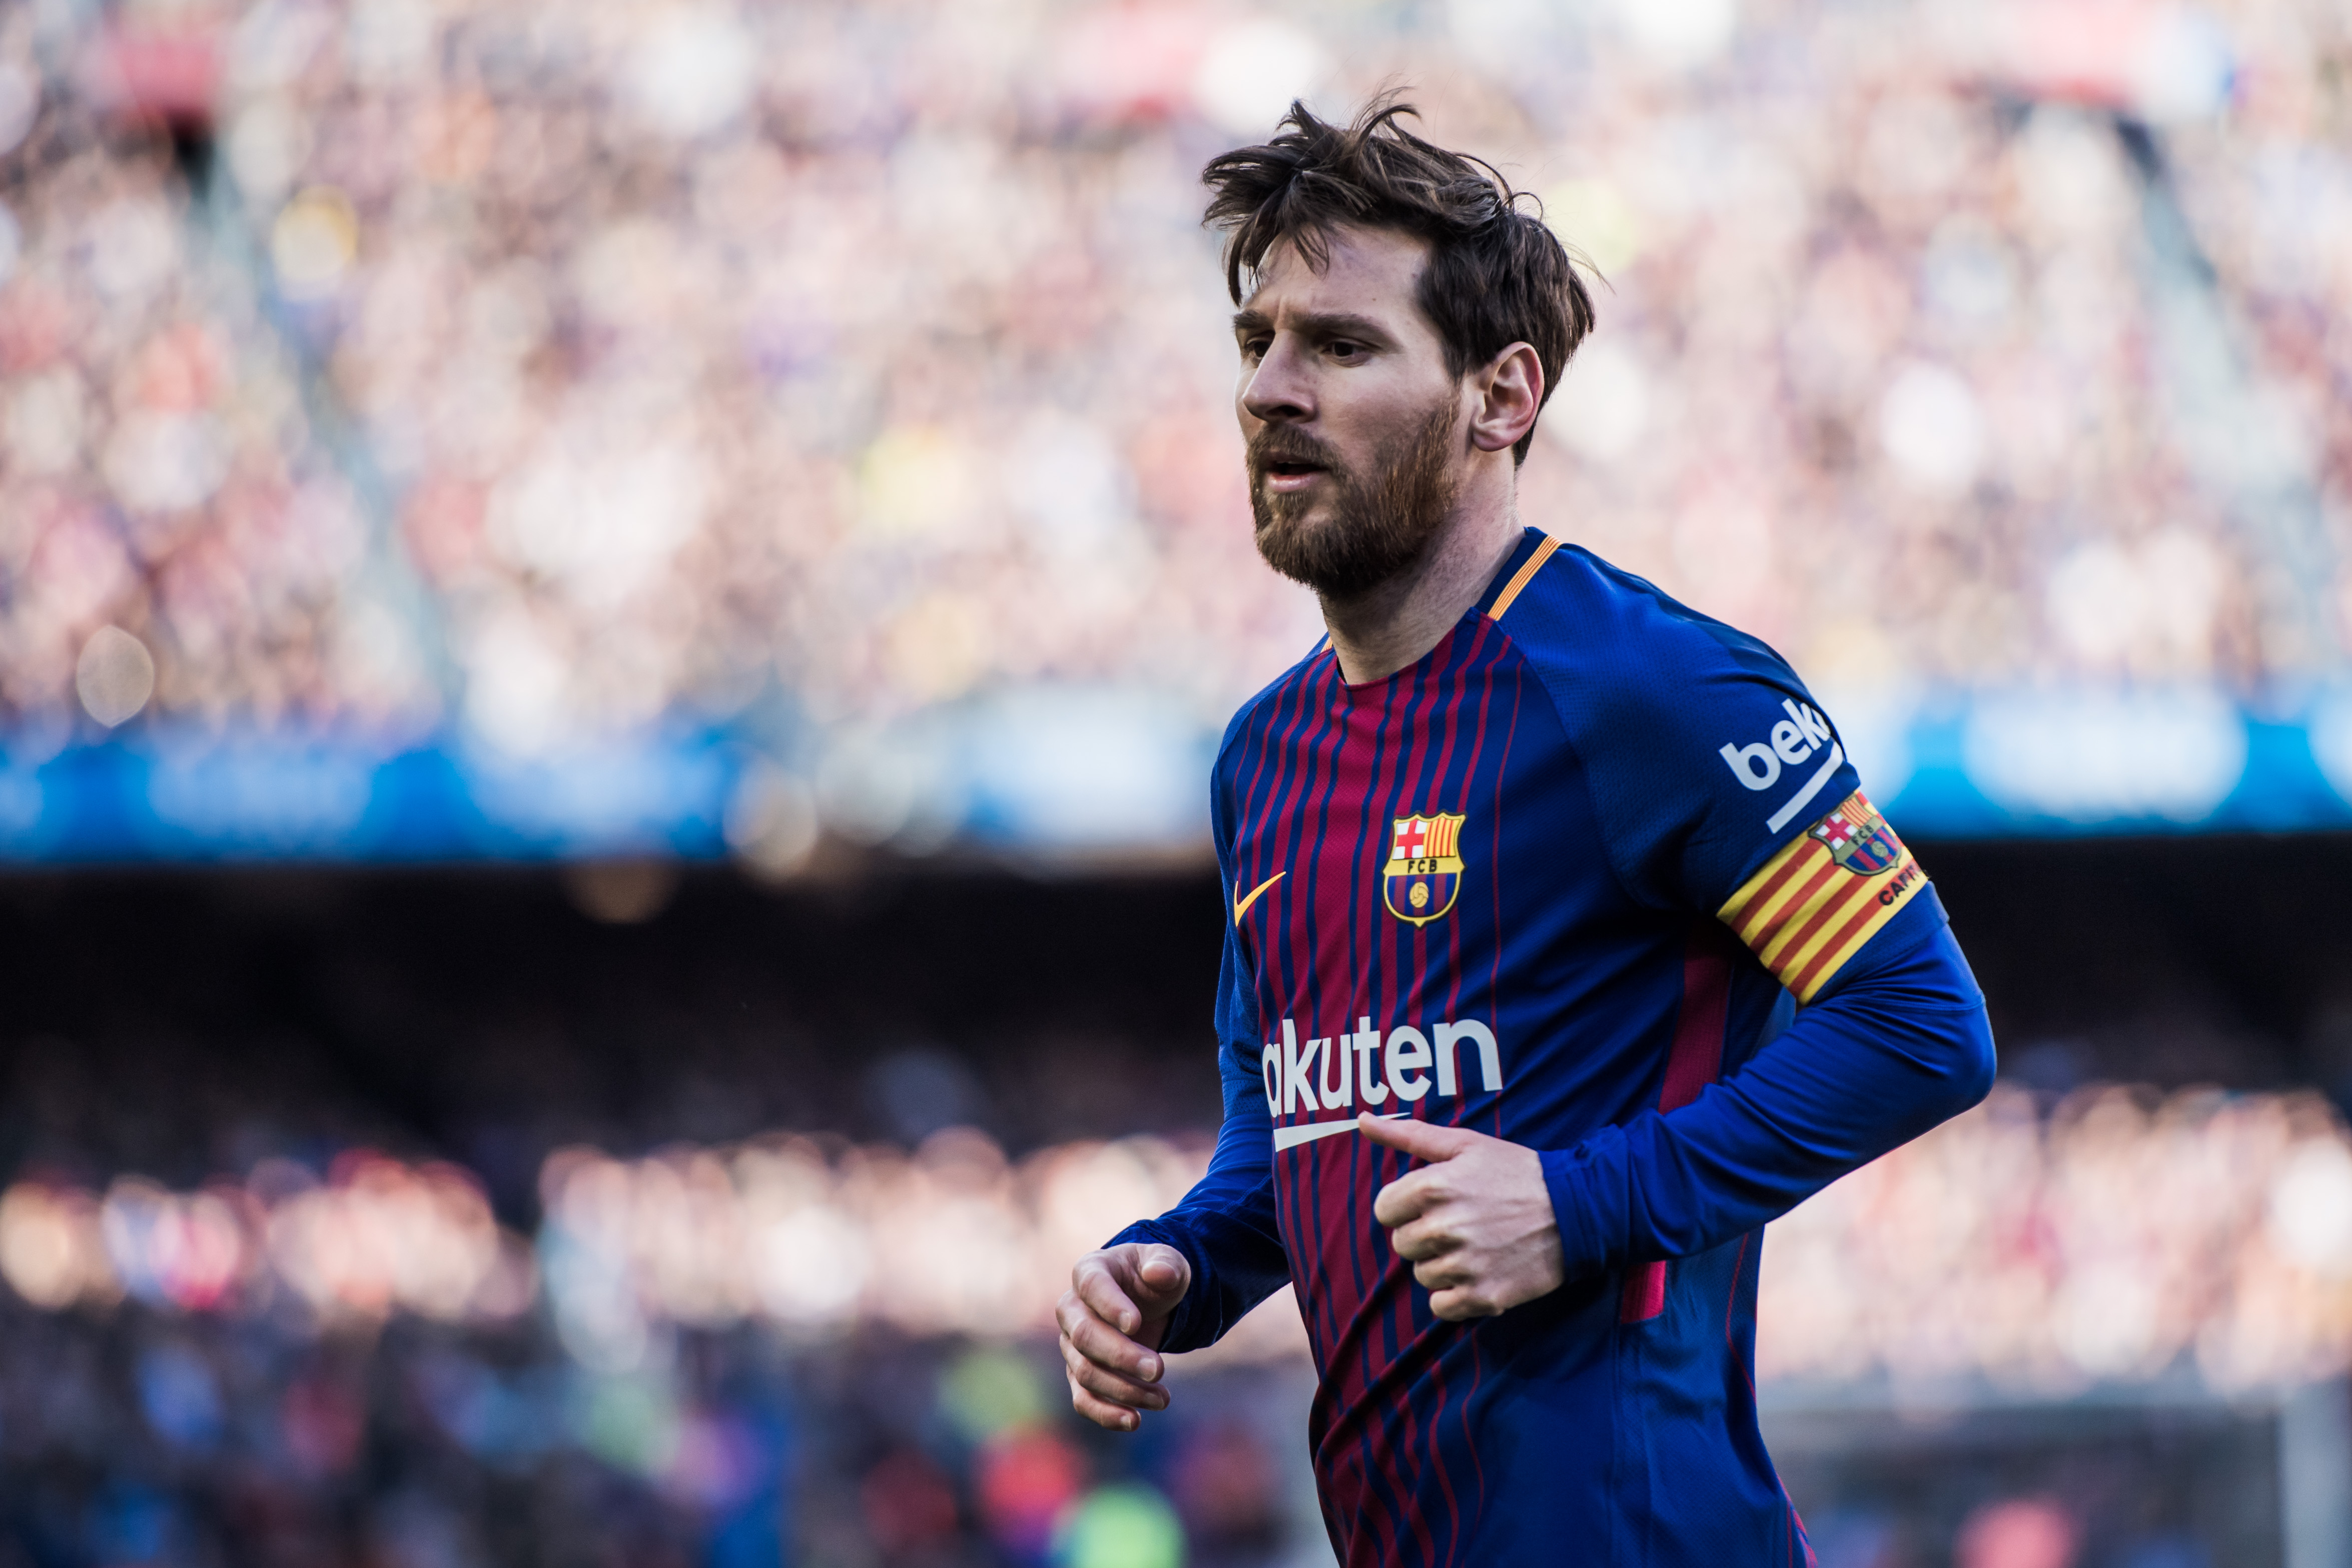 BARCELONA, SPAIN - MARCH 18: (EDITOR'S NOTE: This image has been processed using digital filters) Lionel Messi of FC Barcelona looks on during the La Liga match between Barcelona and Athletic Club at Camp Nou on March 18, 2018 in Barcelona, Spain. (Photo by Alex Caparros/Getty Images)